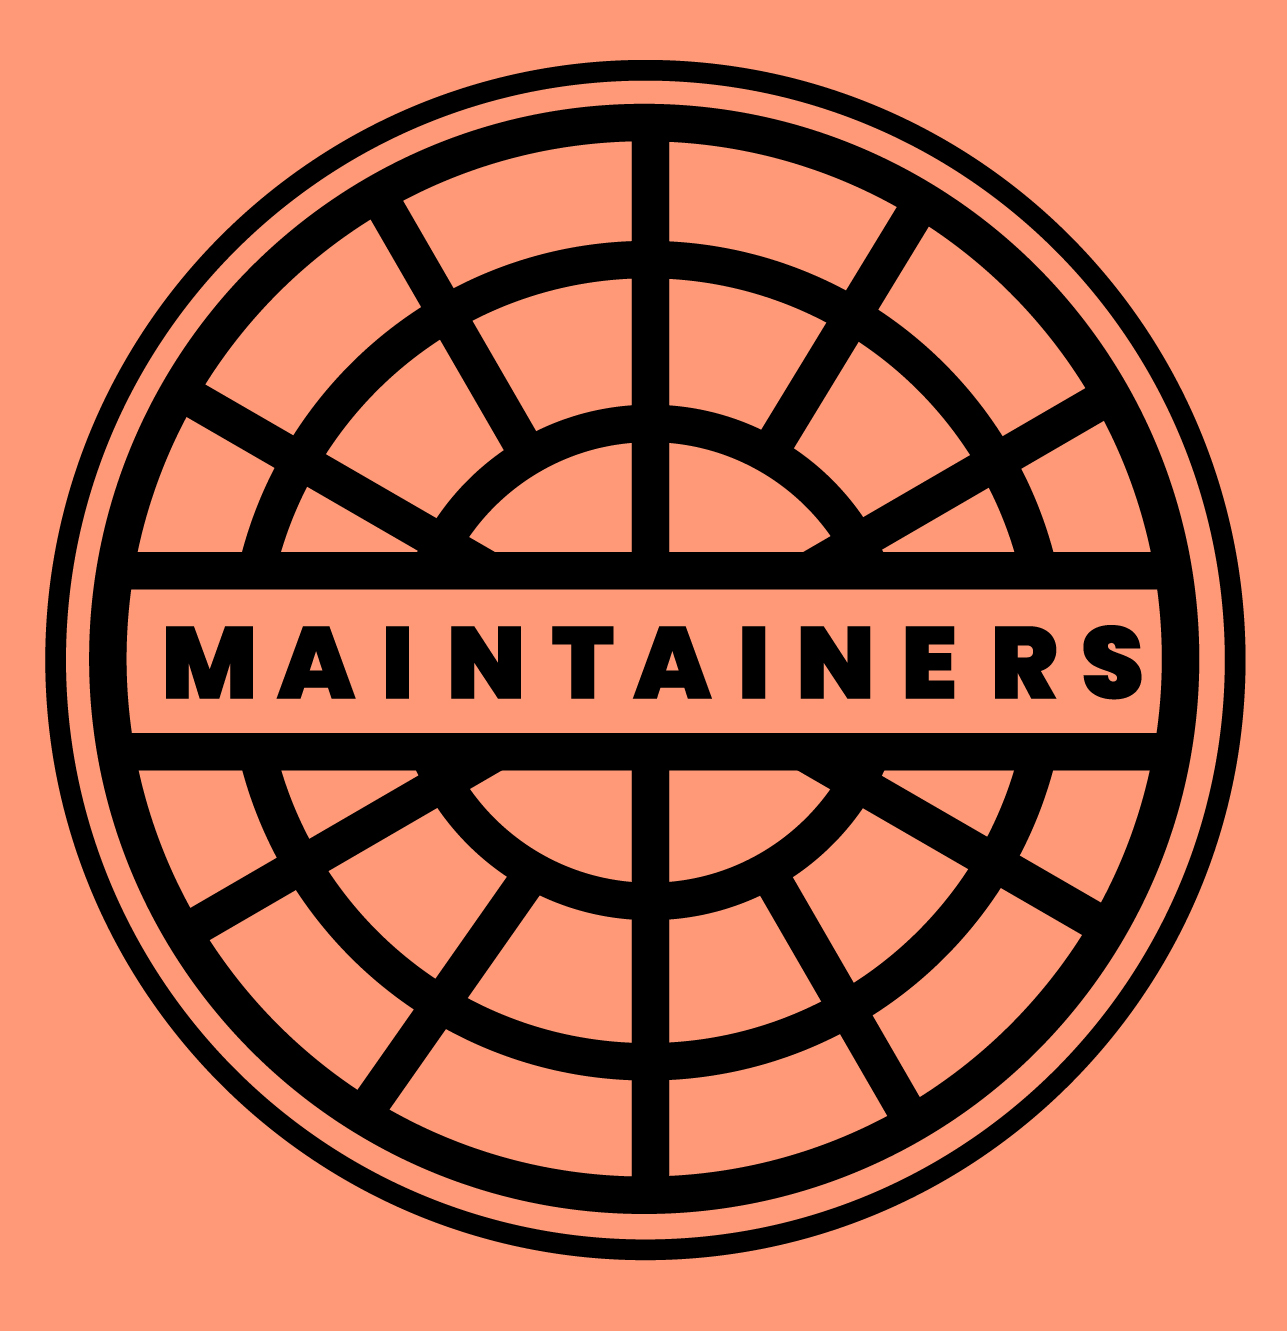 Blog — The Maintainers